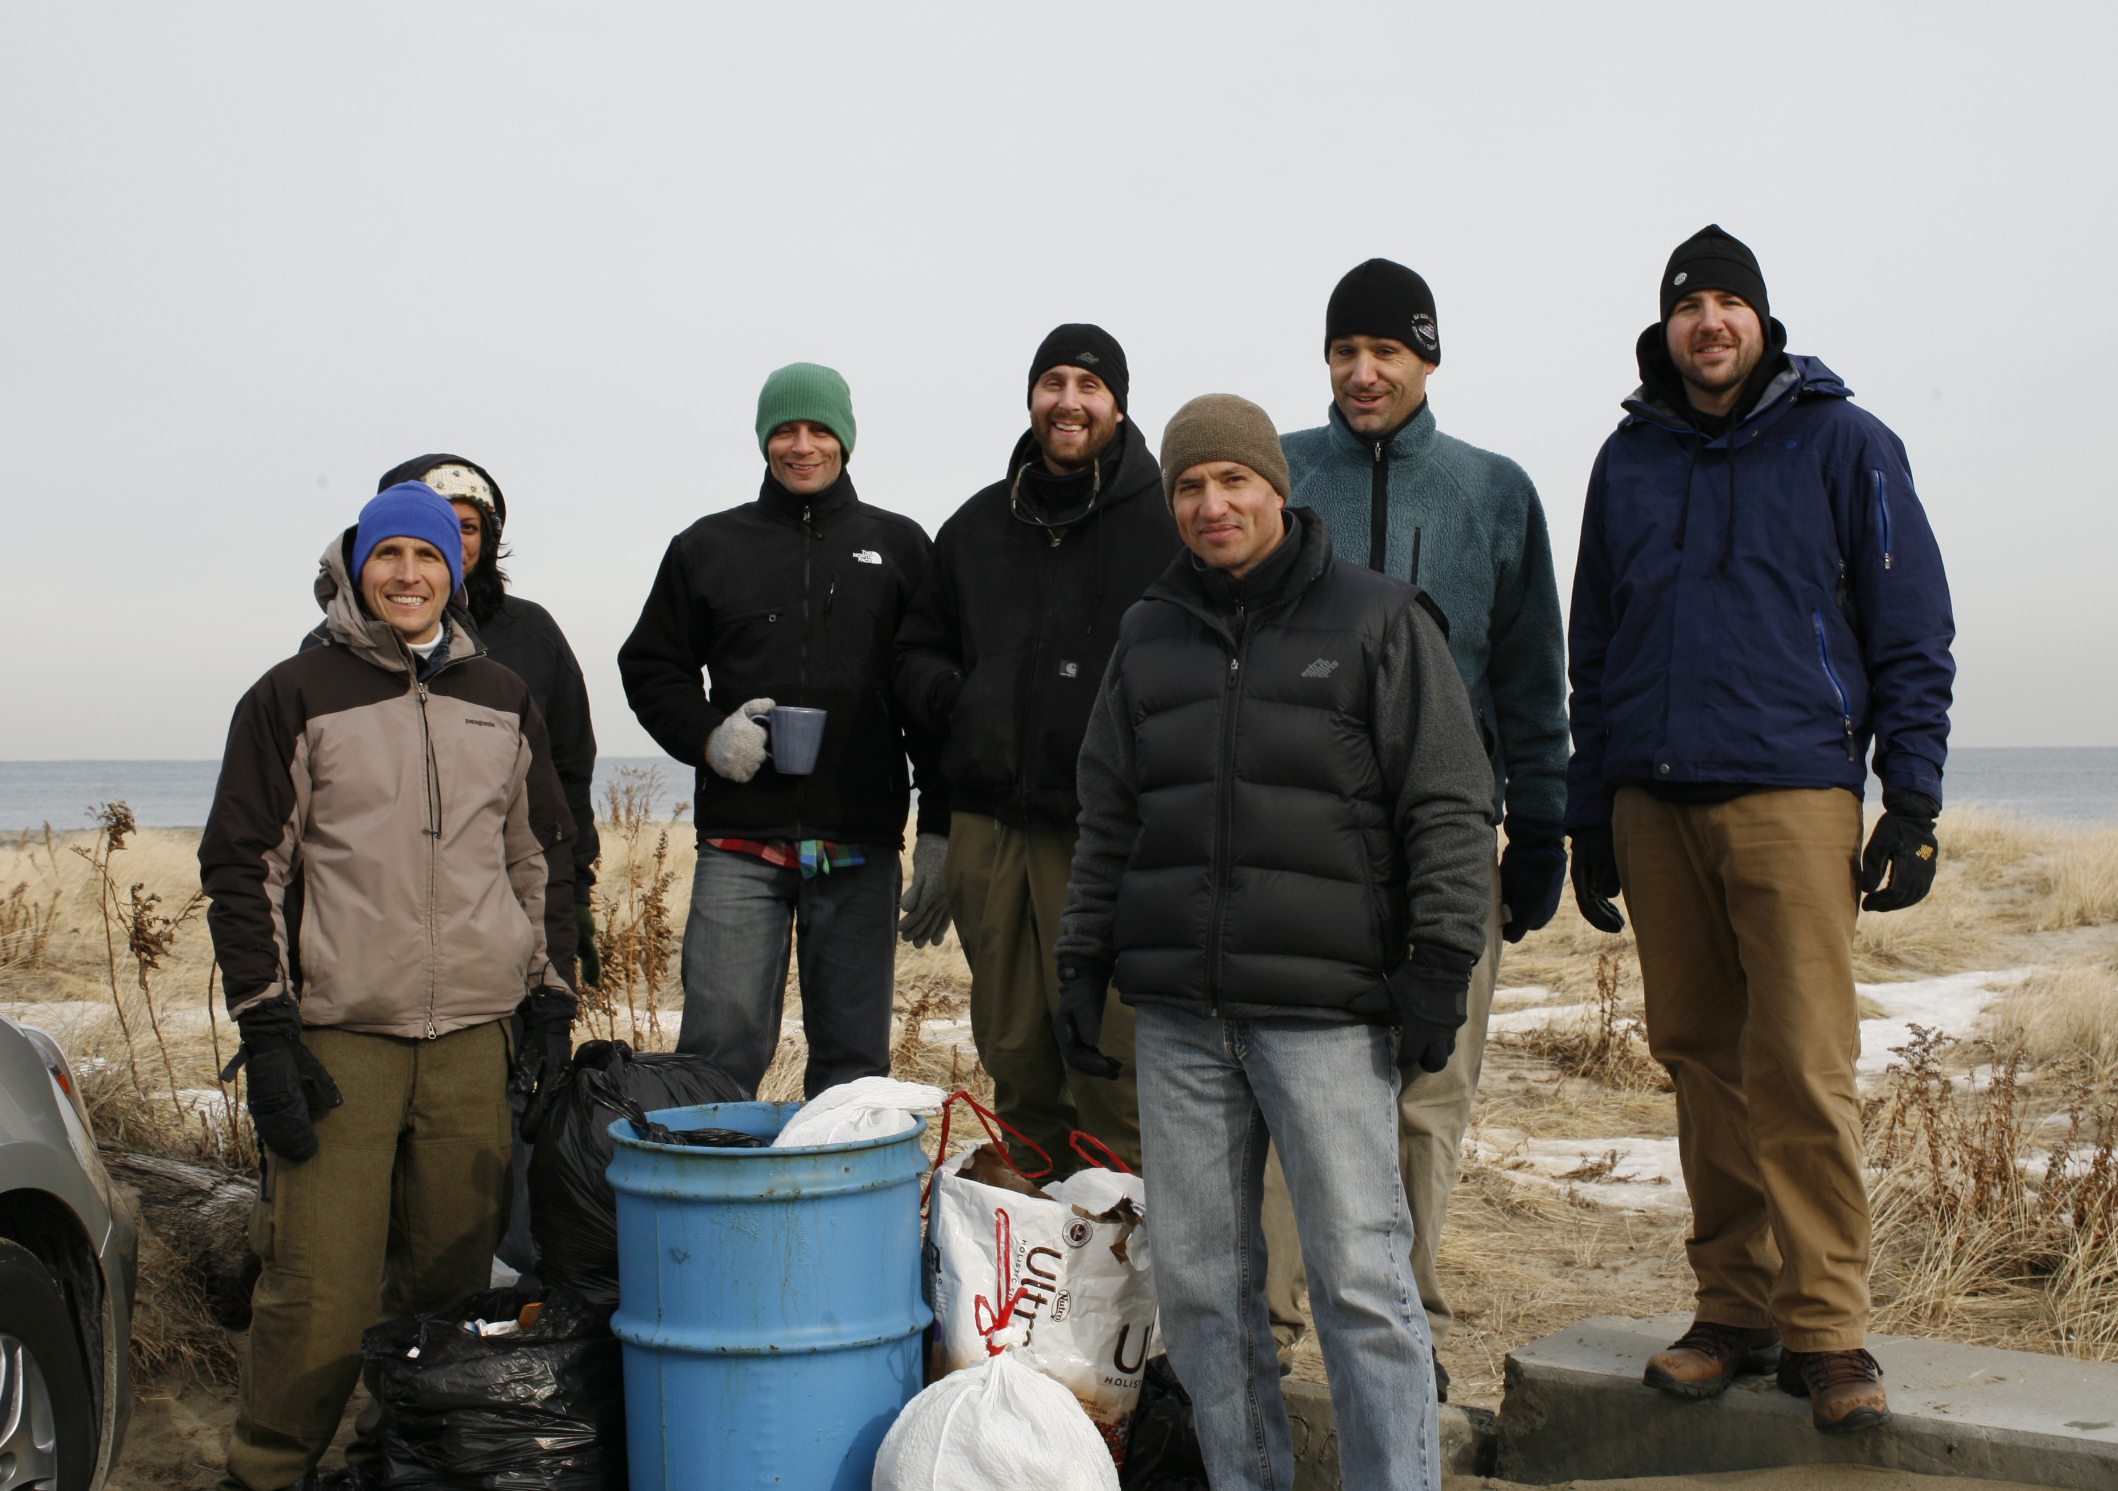 Surfrider Volunteers Cleanup Asbury Beach